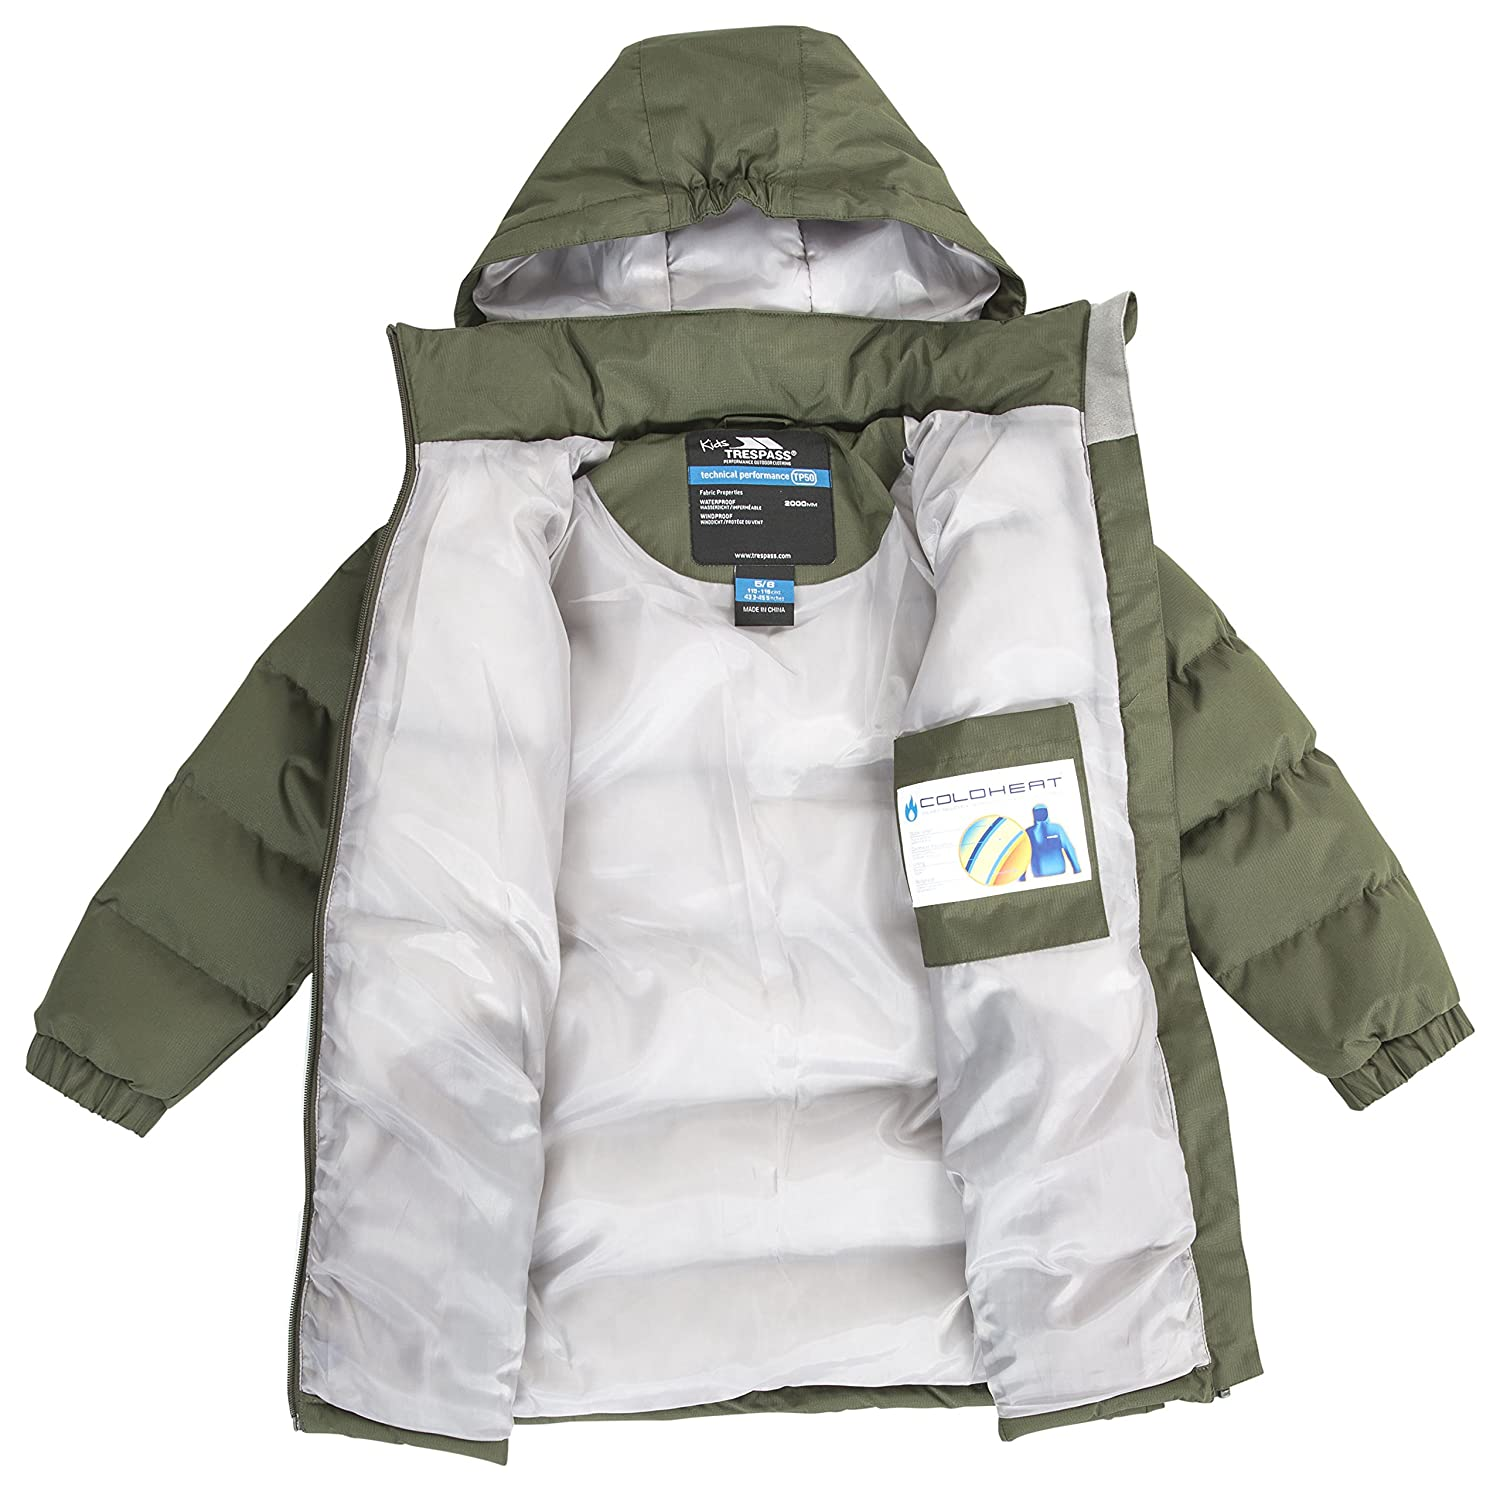 6f512ac61 Trespass Kids Tiffy Jacket: Amazon.co.uk: Sports & Outdoors